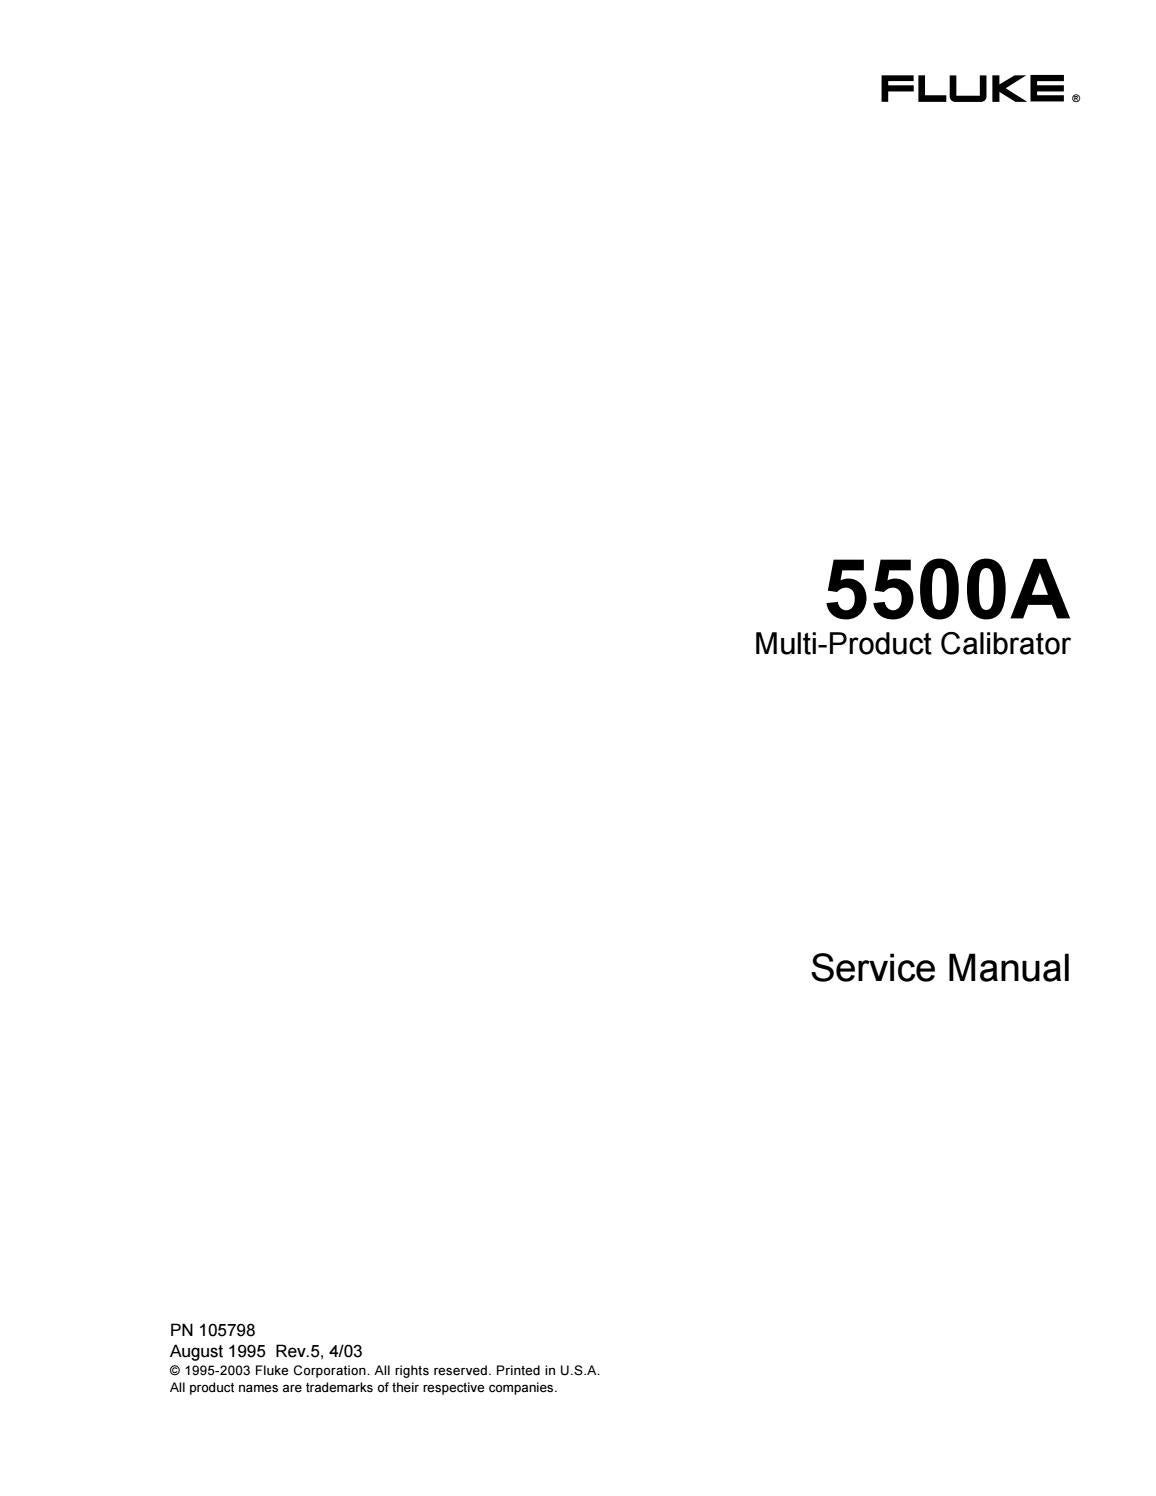 FLUKE 5500A SERVICE MANUAL WITH SCHEMATICS by Turhan - issuu